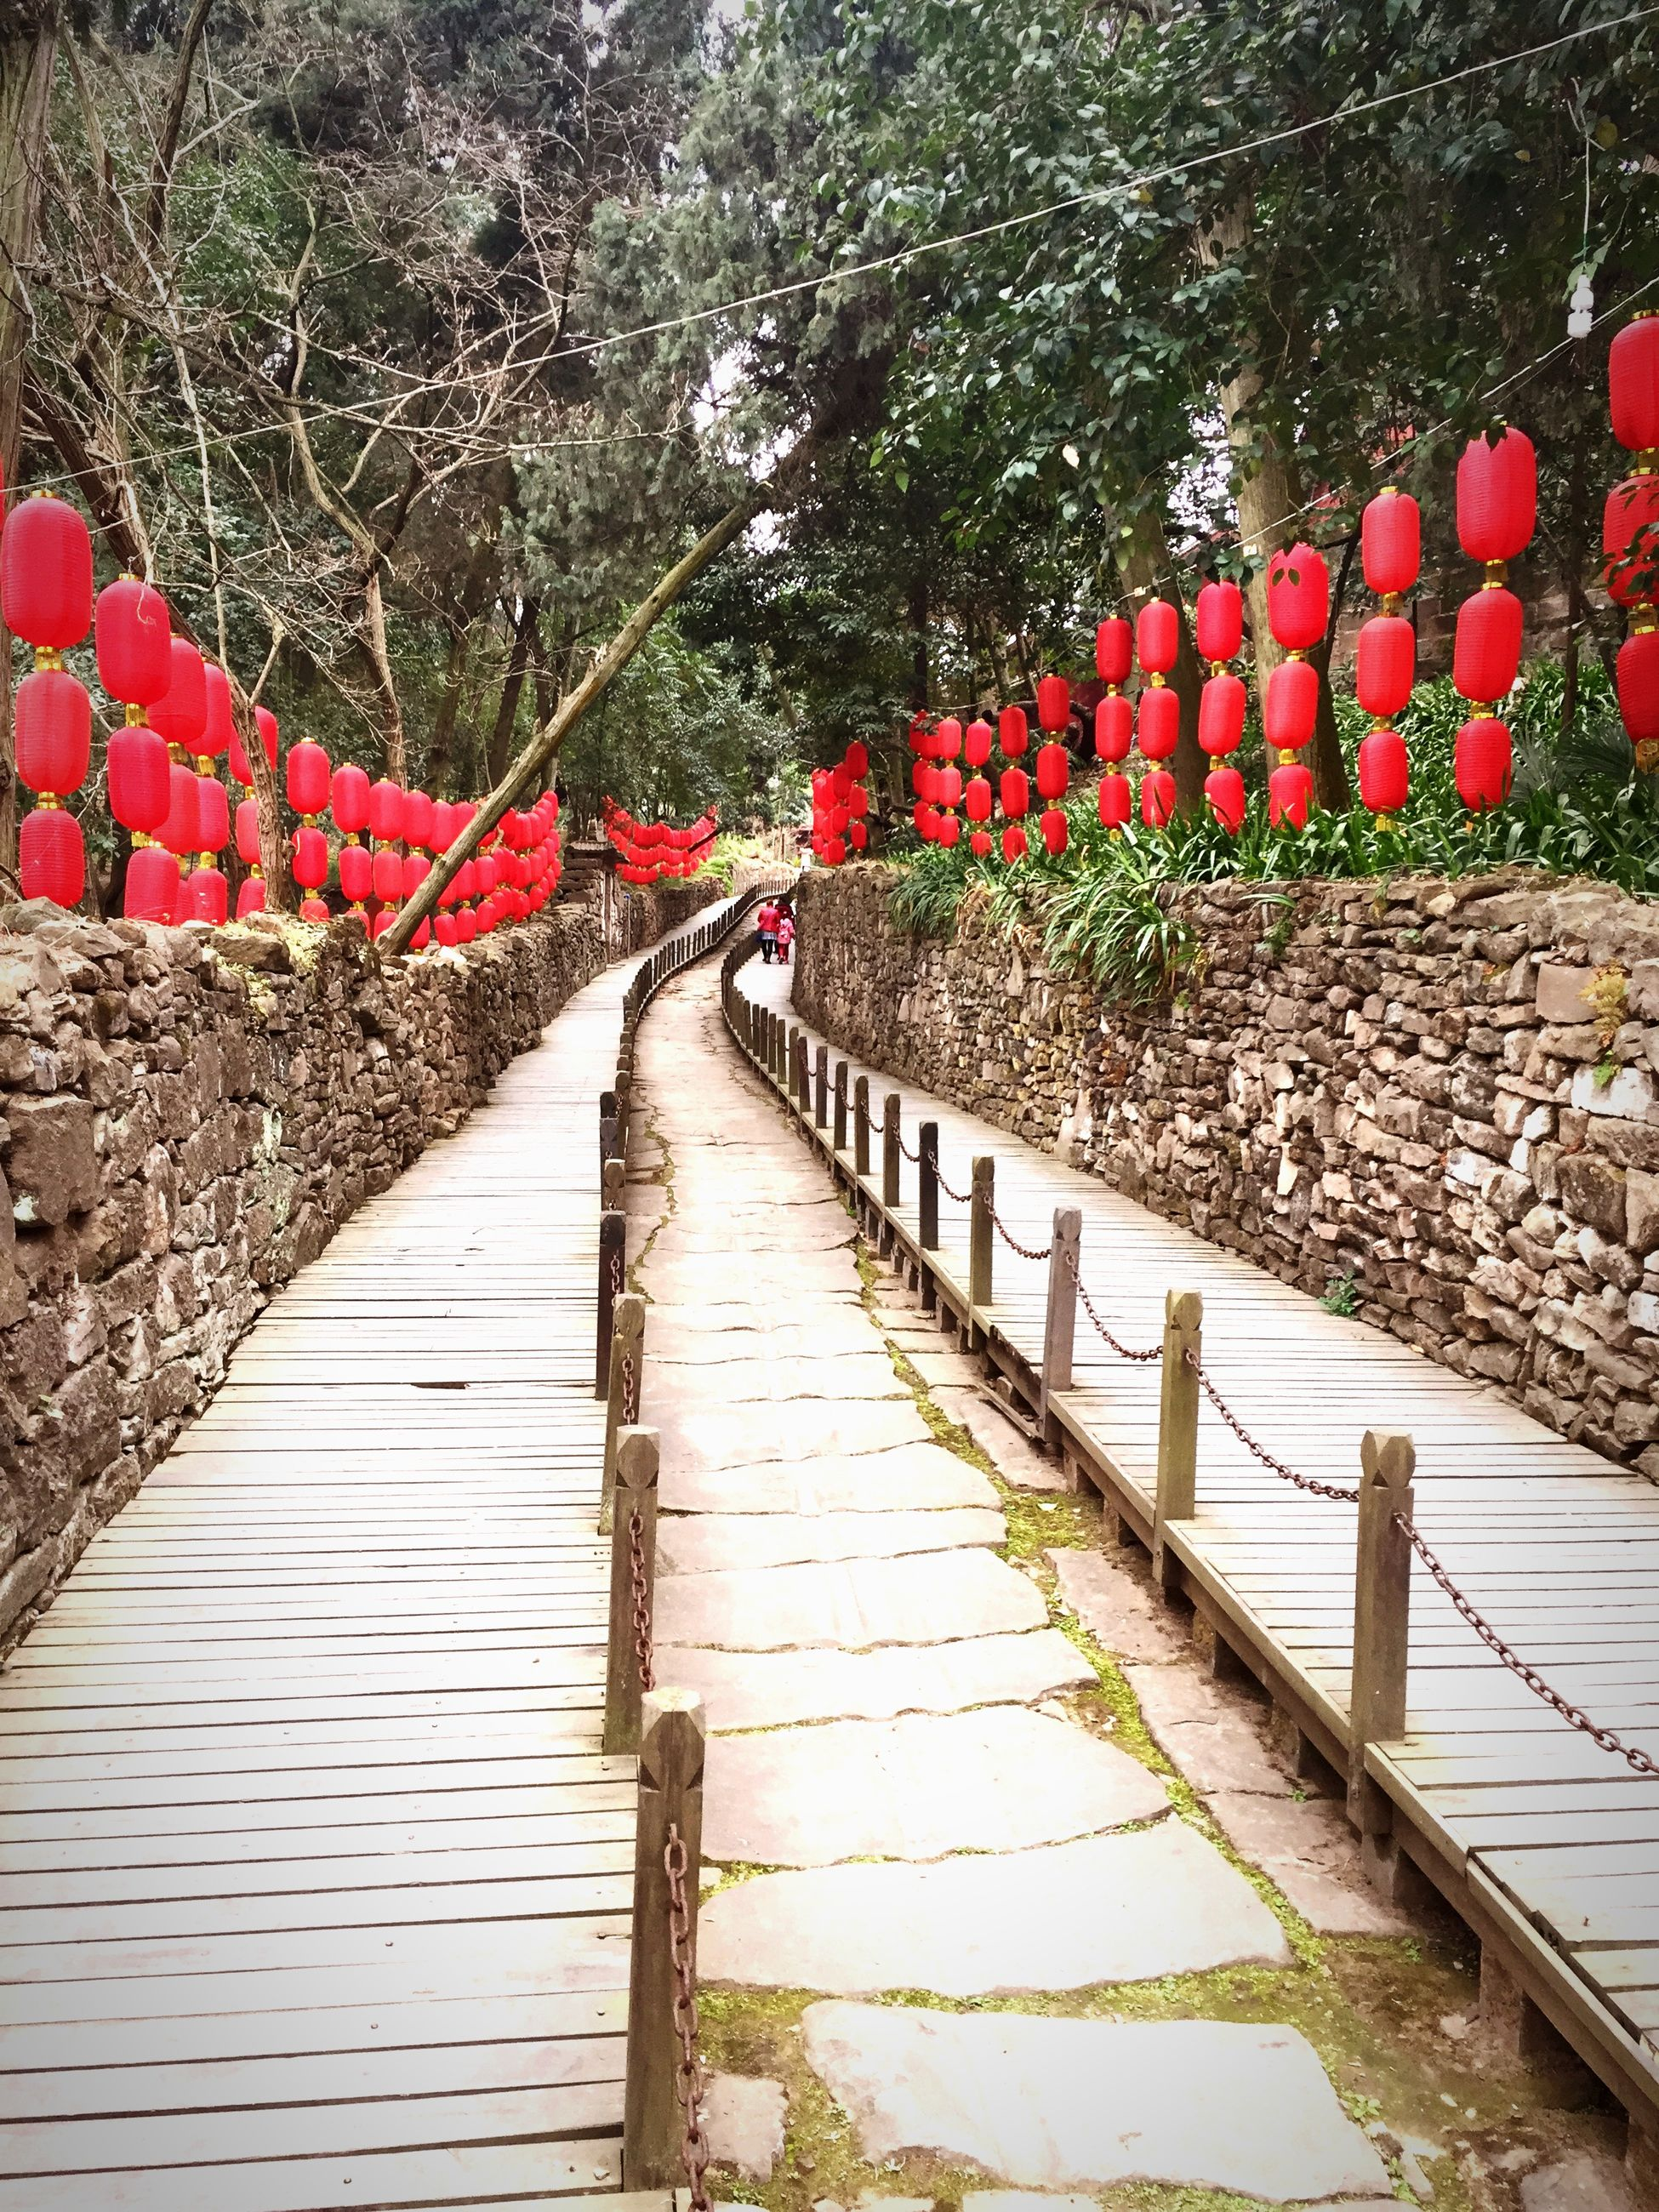 the way forward, connection, built structure, bridge - man made structure, red, architecture, tree, railing, footbridge, diminishing perspective, vanishing point, day, bridge, outdoors, nature, walkway, tranquility, no people, long, transportation